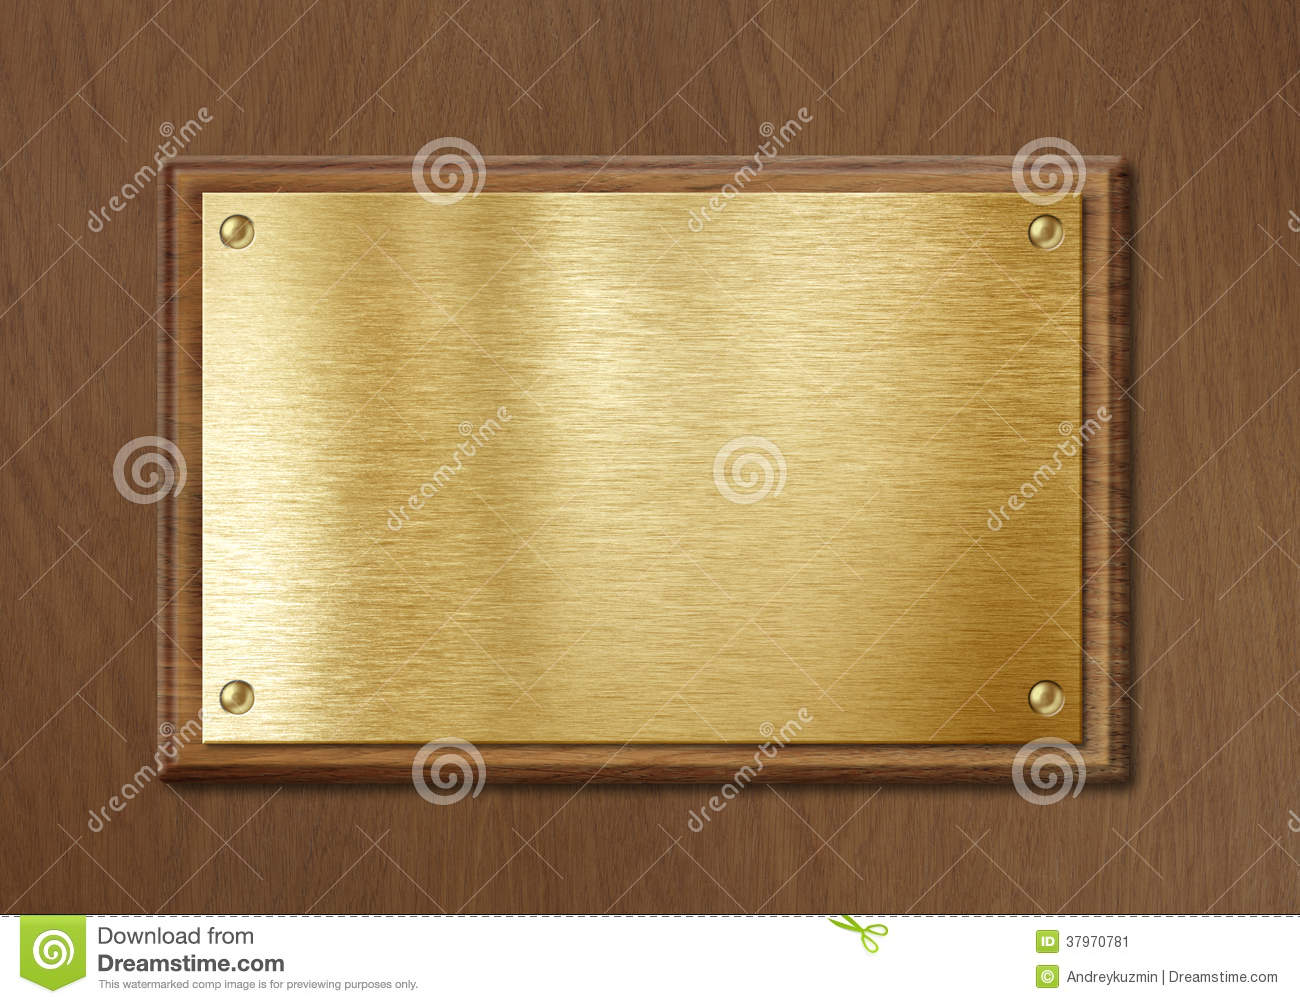 Golden Or Brass Plate For Nameboard Or Diploma Background